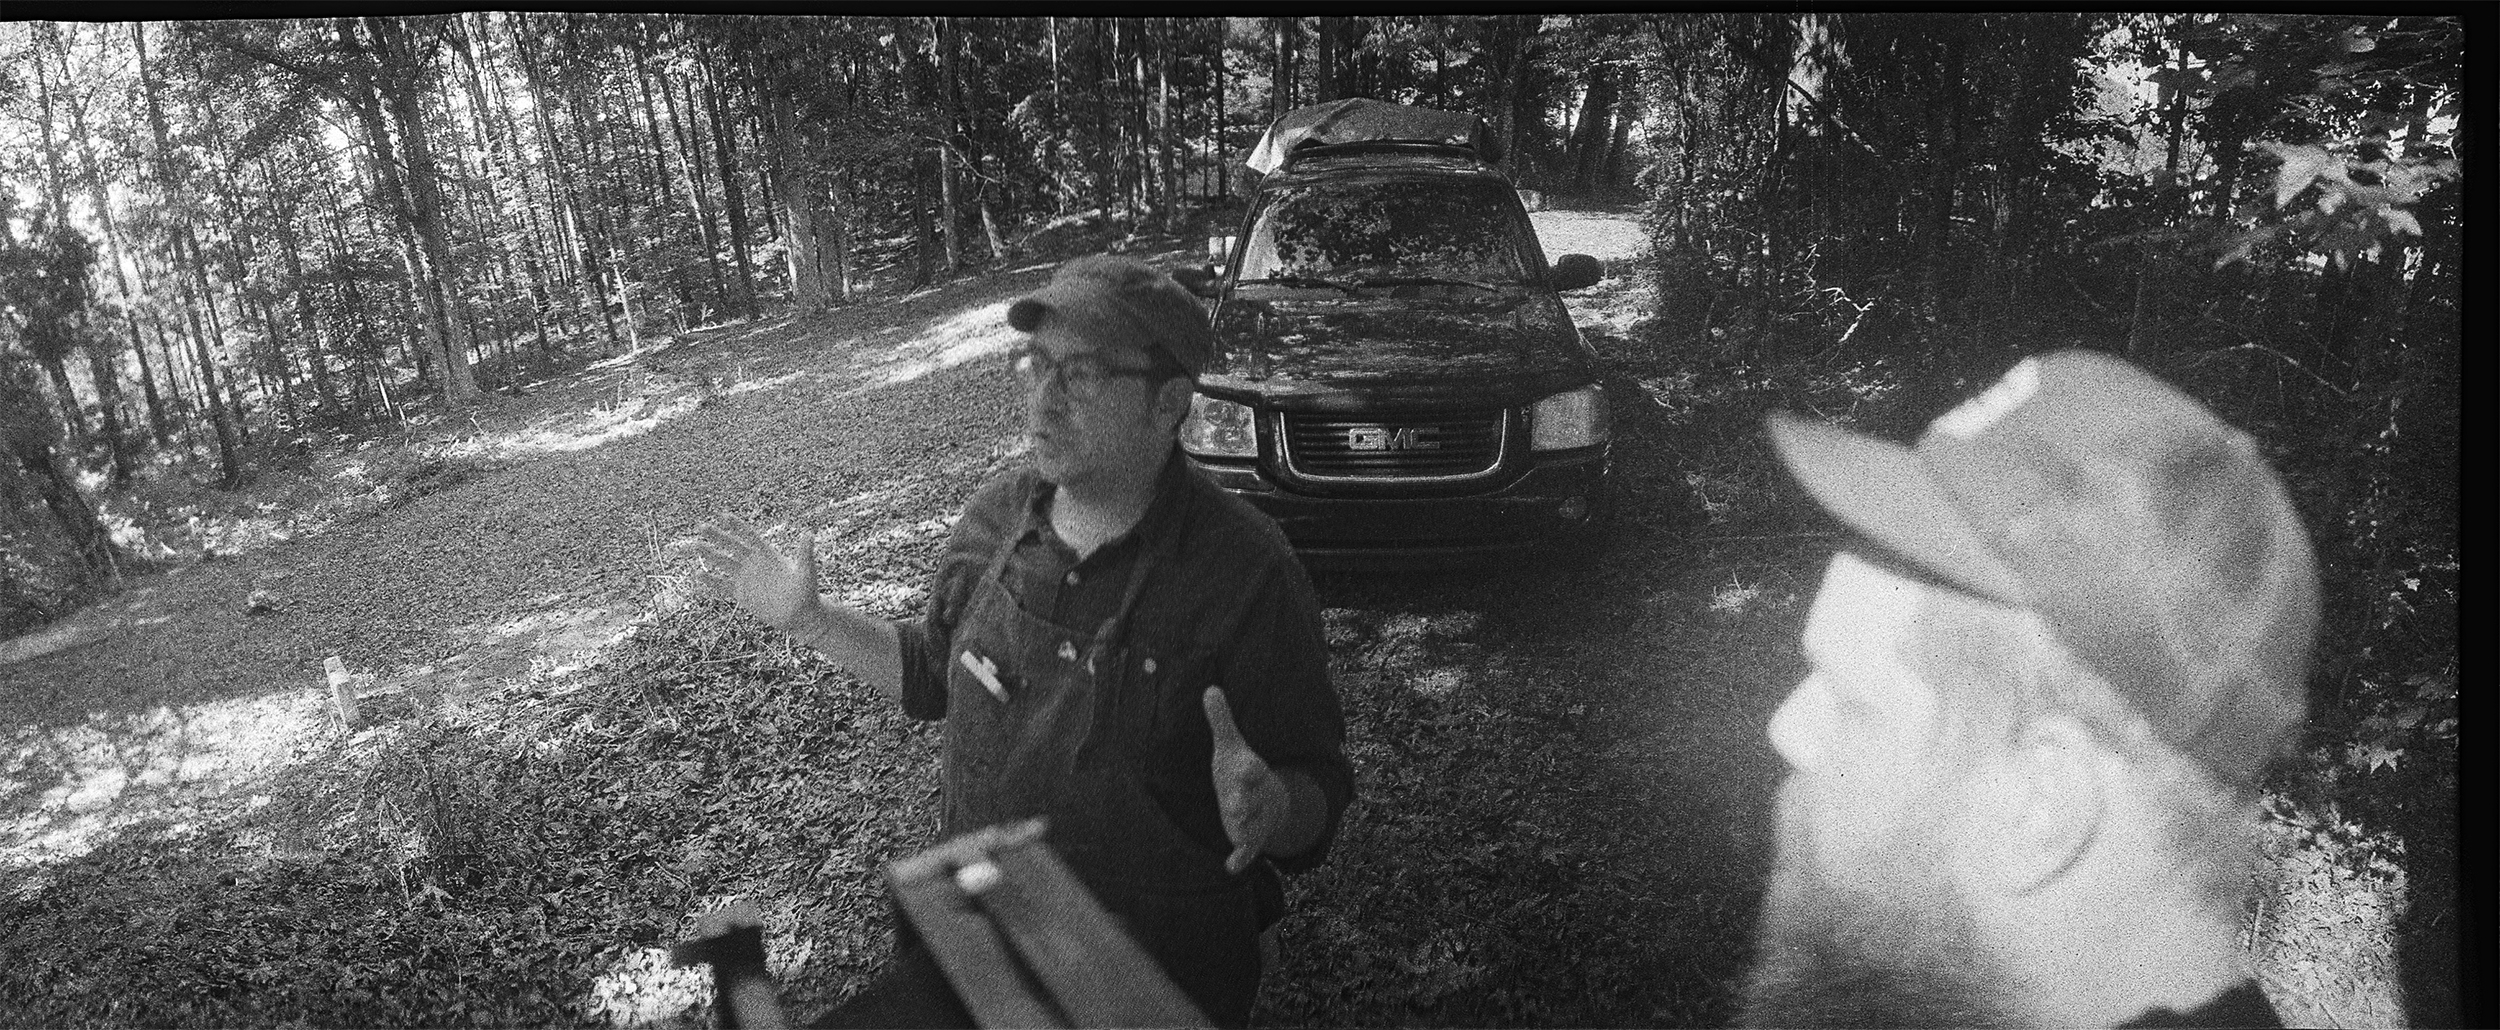 gusdugger_bts_pano_in_the_woods.jpg